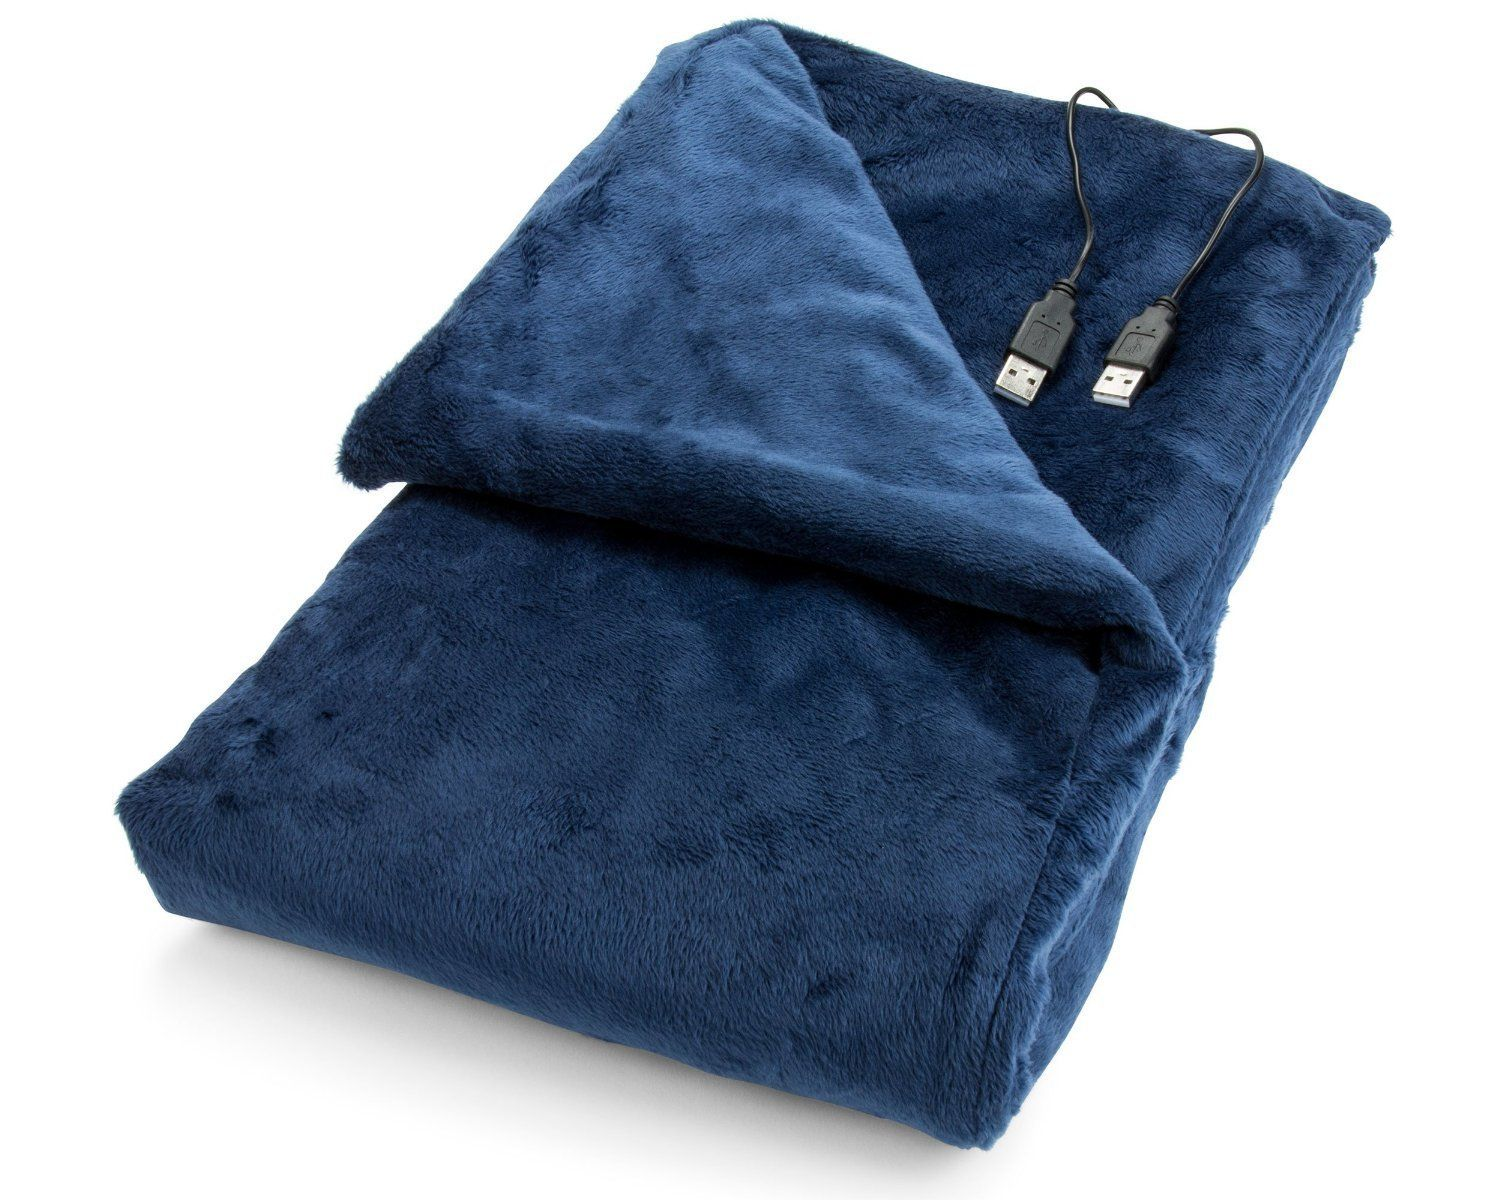 Usb Heating Blanket Cordless Heated Blanket Blue Blanket Heated Blanket